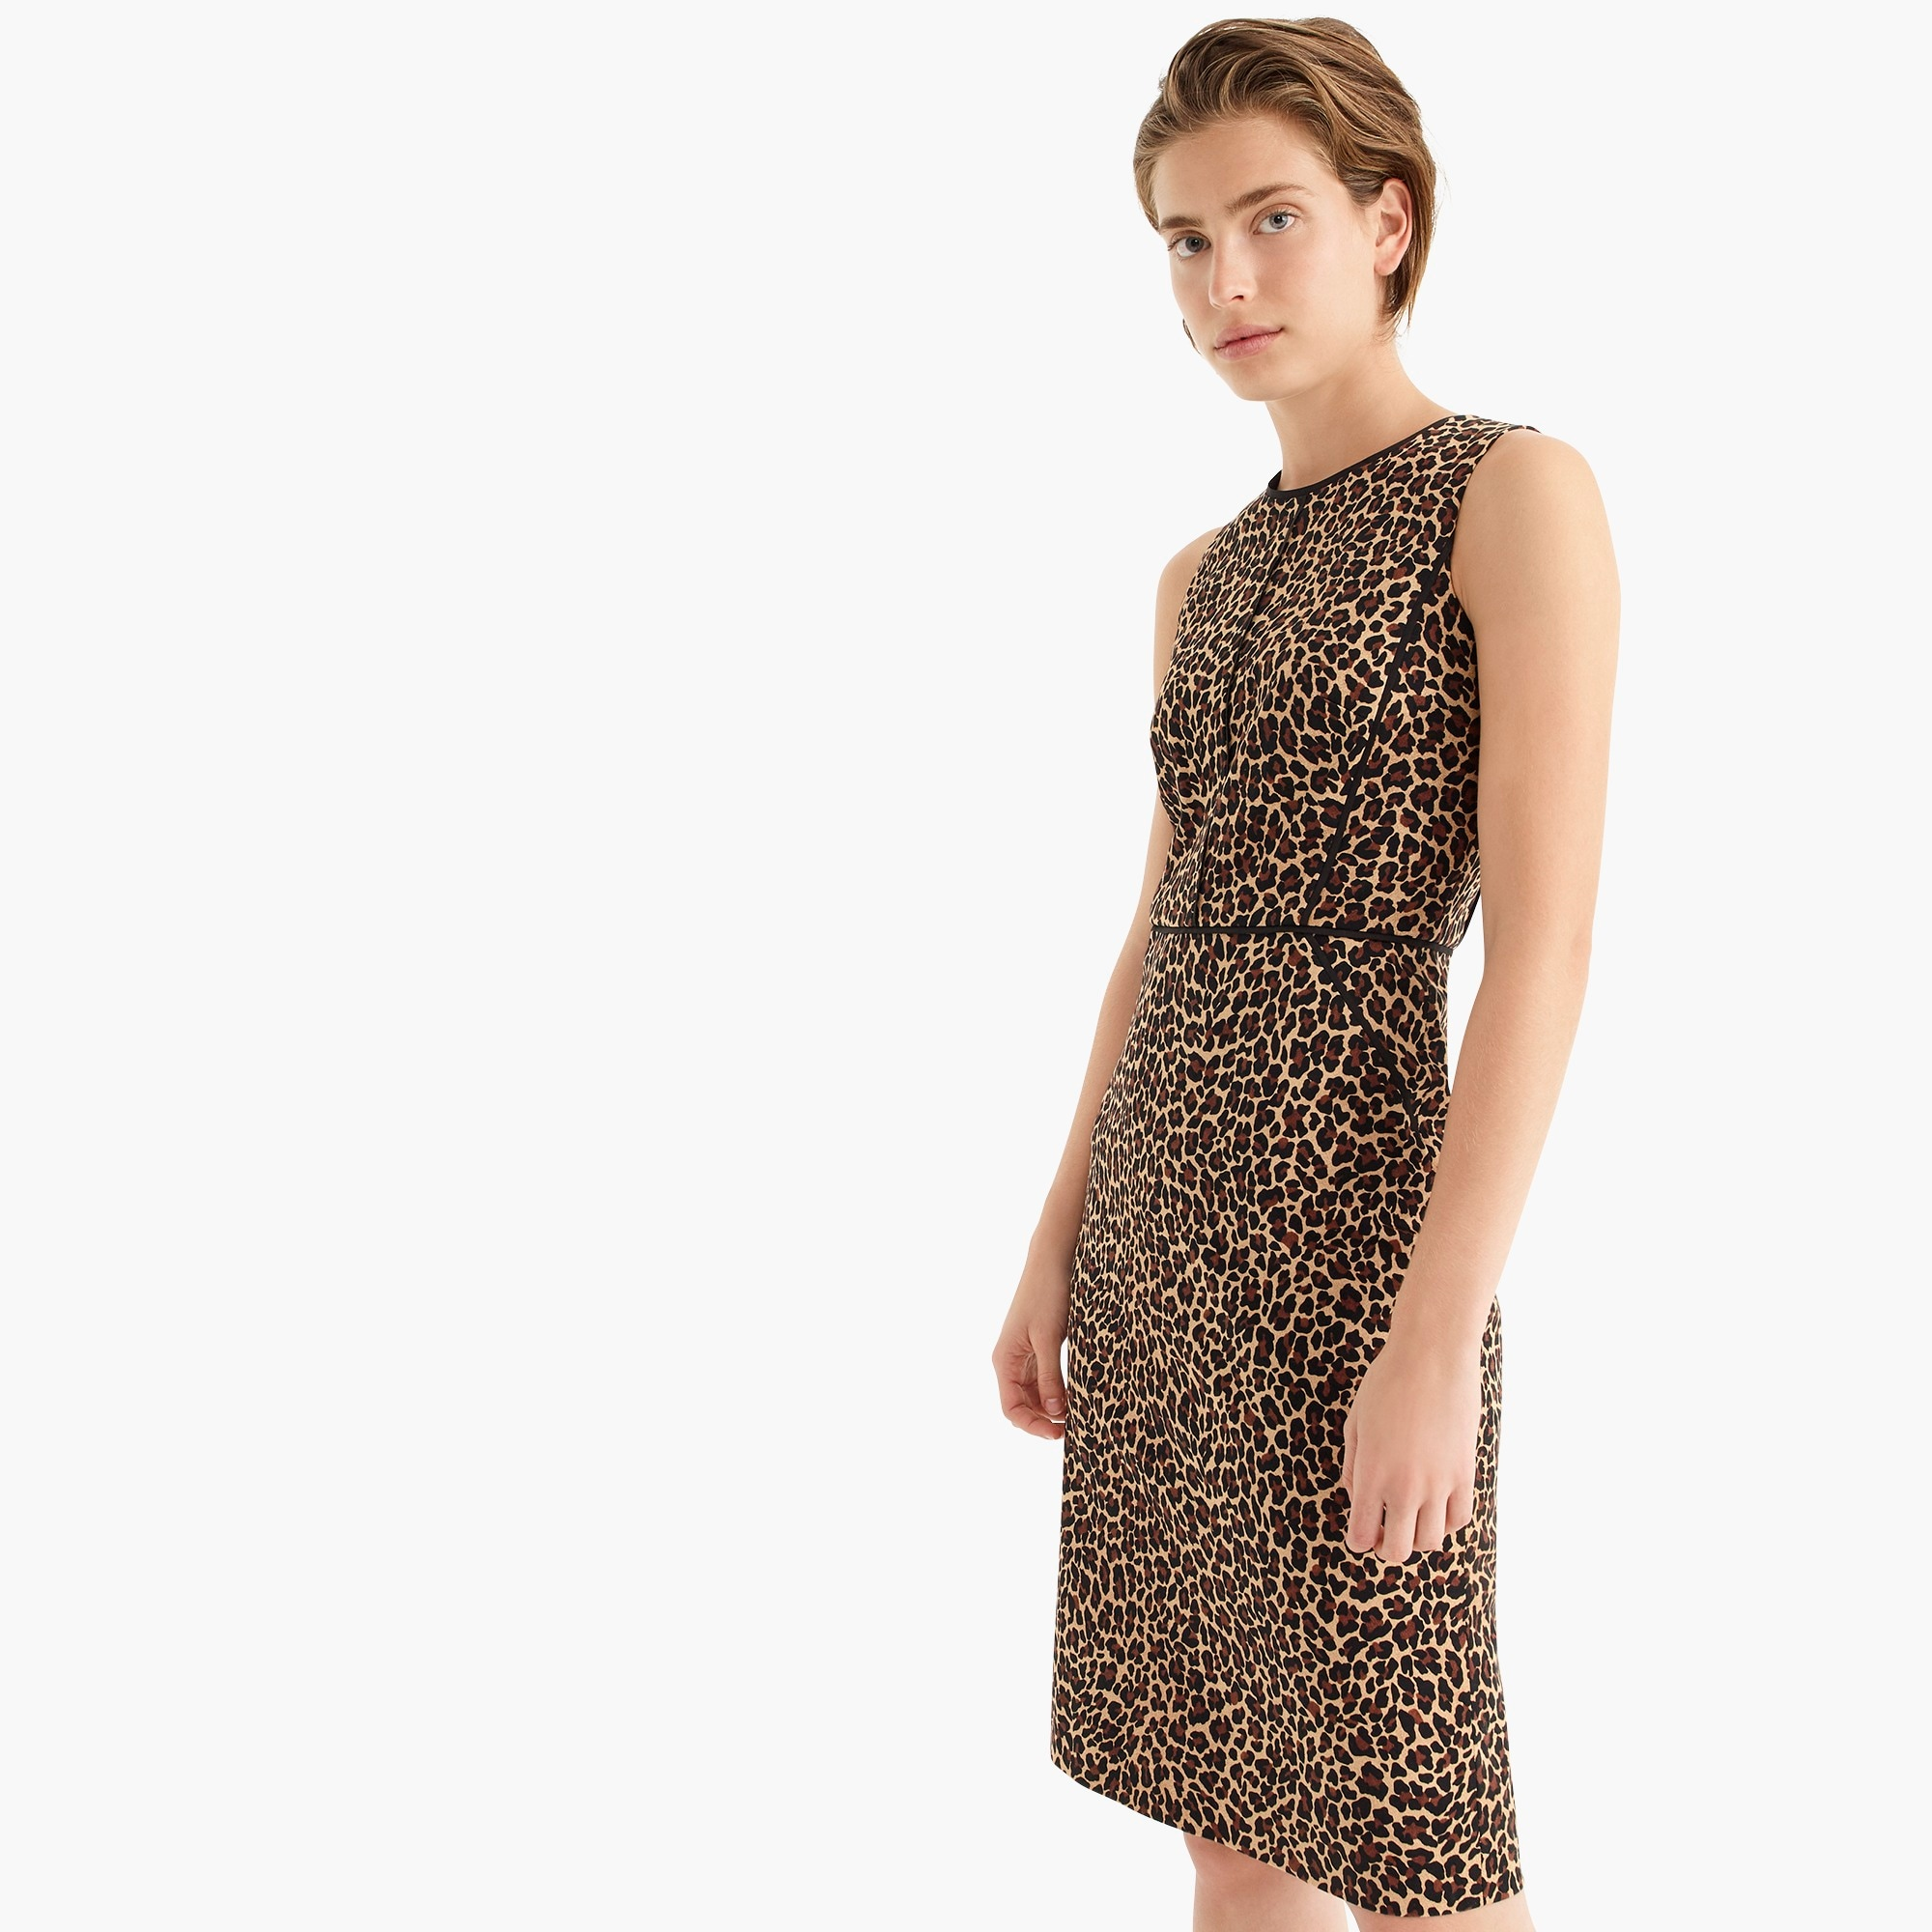 Sheath dress in leopard print